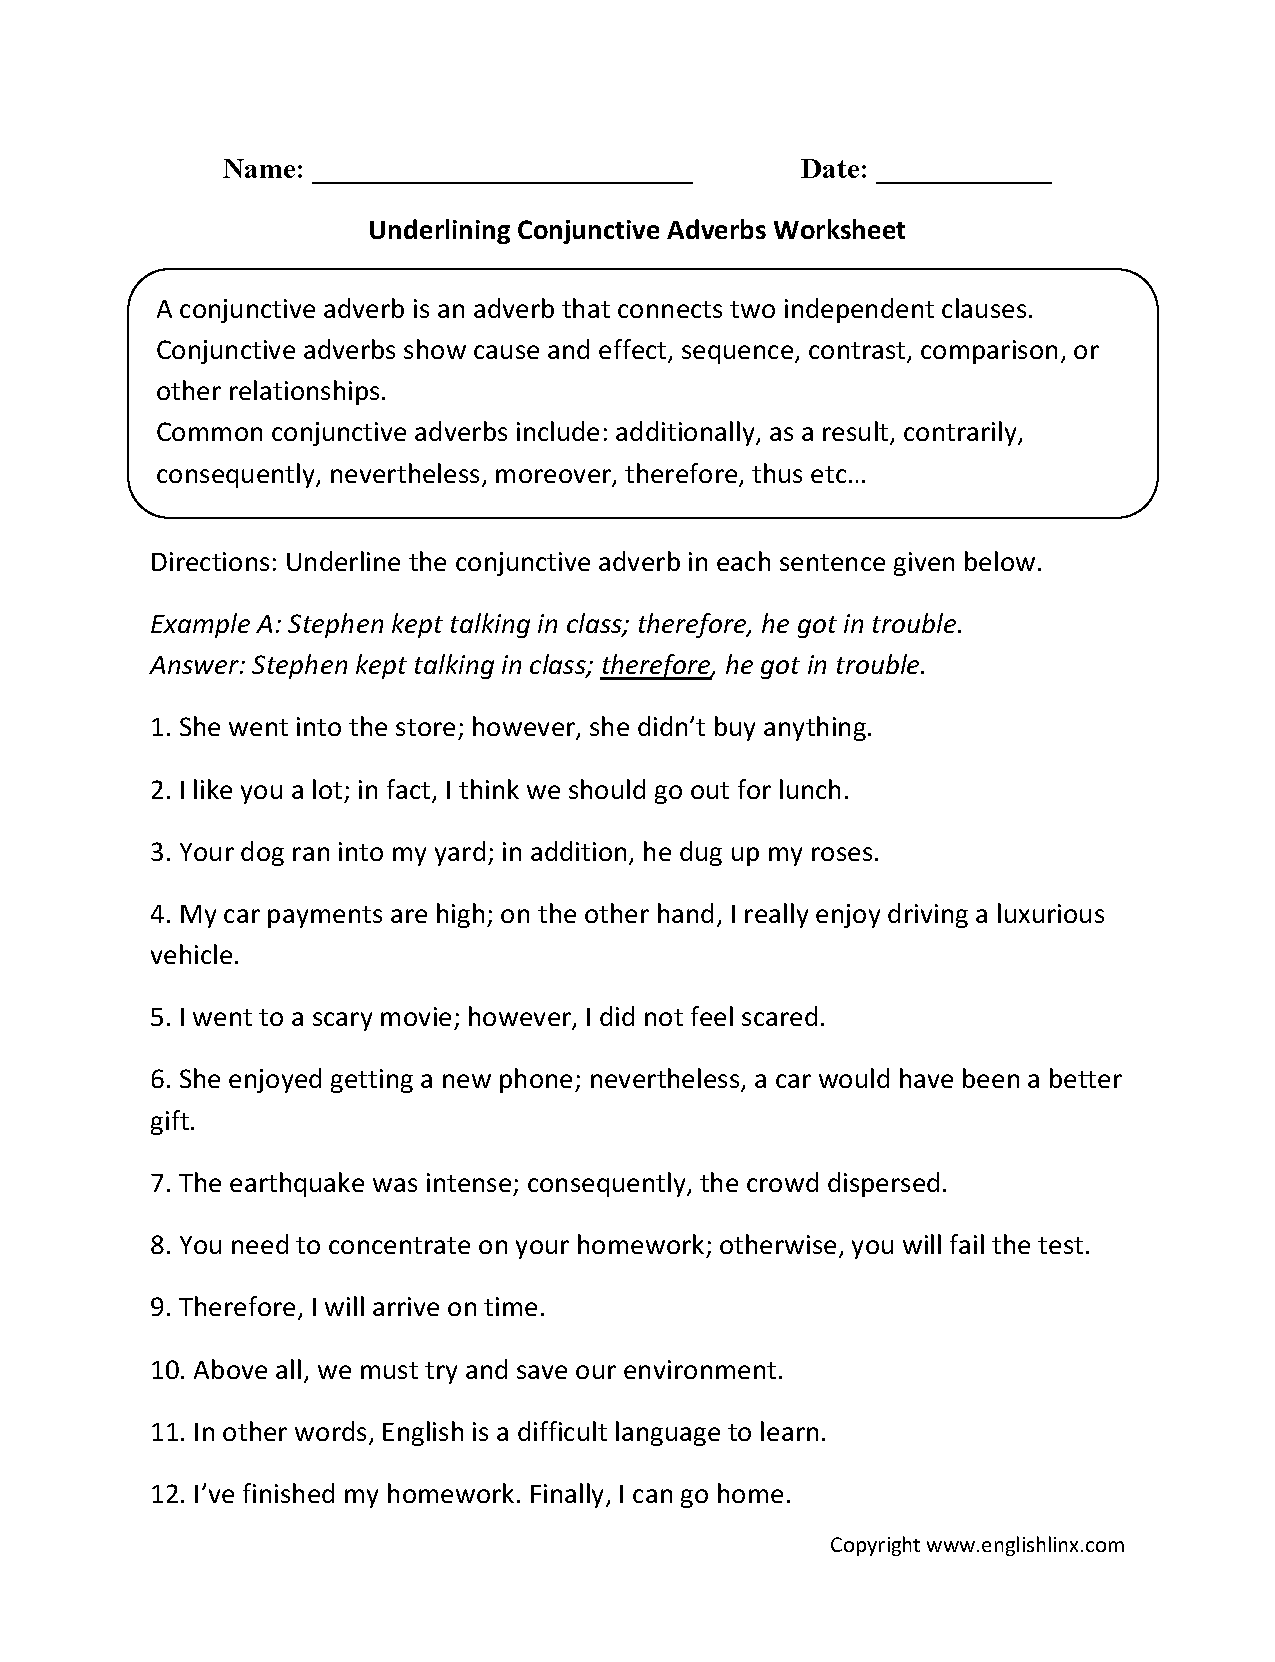 Aldiablosus  Outstanding Englishlinxcom  Conjunctions Worksheets With Luxury Worksheet With Amazing Maps And Globes Worksheets Also Printable Short Vowel Worksheets In Addition Possessive Pronouns Spanish Worksheet And Solving Systems Word Problems Worksheet As Well As Math Worksheet Grade  Additionally Color Worksheets For Pre K From Englishlinxcom With Aldiablosus  Luxury Englishlinxcom  Conjunctions Worksheets With Amazing Worksheet And Outstanding Maps And Globes Worksheets Also Printable Short Vowel Worksheets In Addition Possessive Pronouns Spanish Worksheet From Englishlinxcom